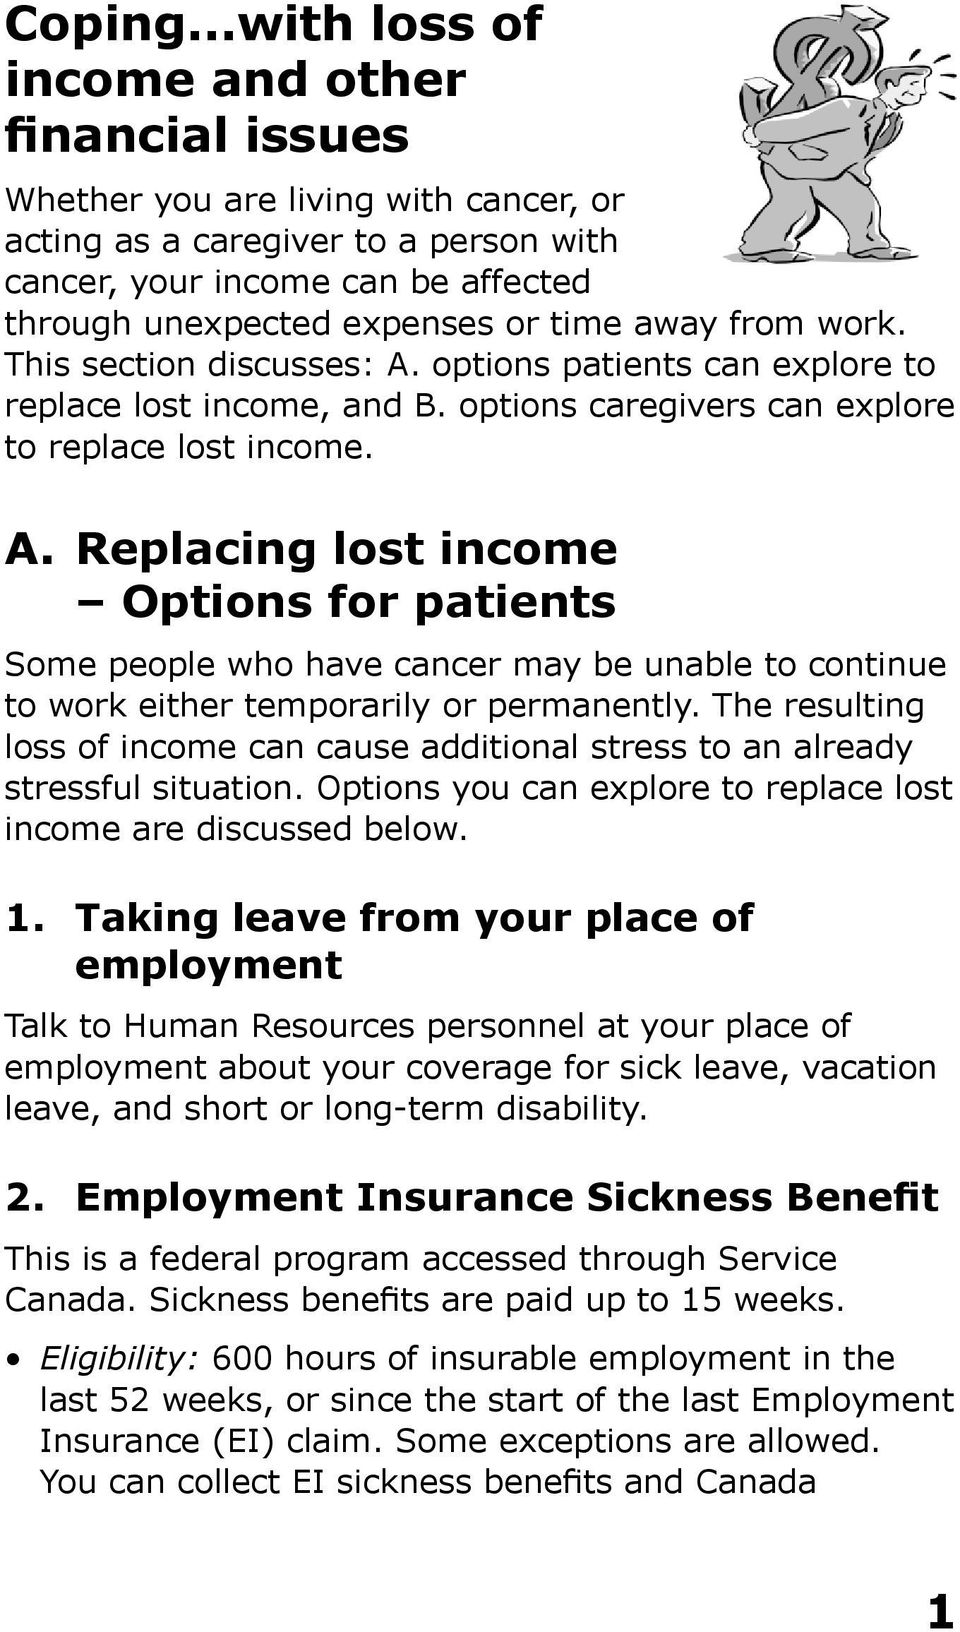 away from work. This section discusses: A. options patients can explore to replace lost income, and B. options caregivers can explore to replace lost income. A. Replacing lost income Options for patients Some people who have cancer may be unable to continue to work either temporarily or permanently.